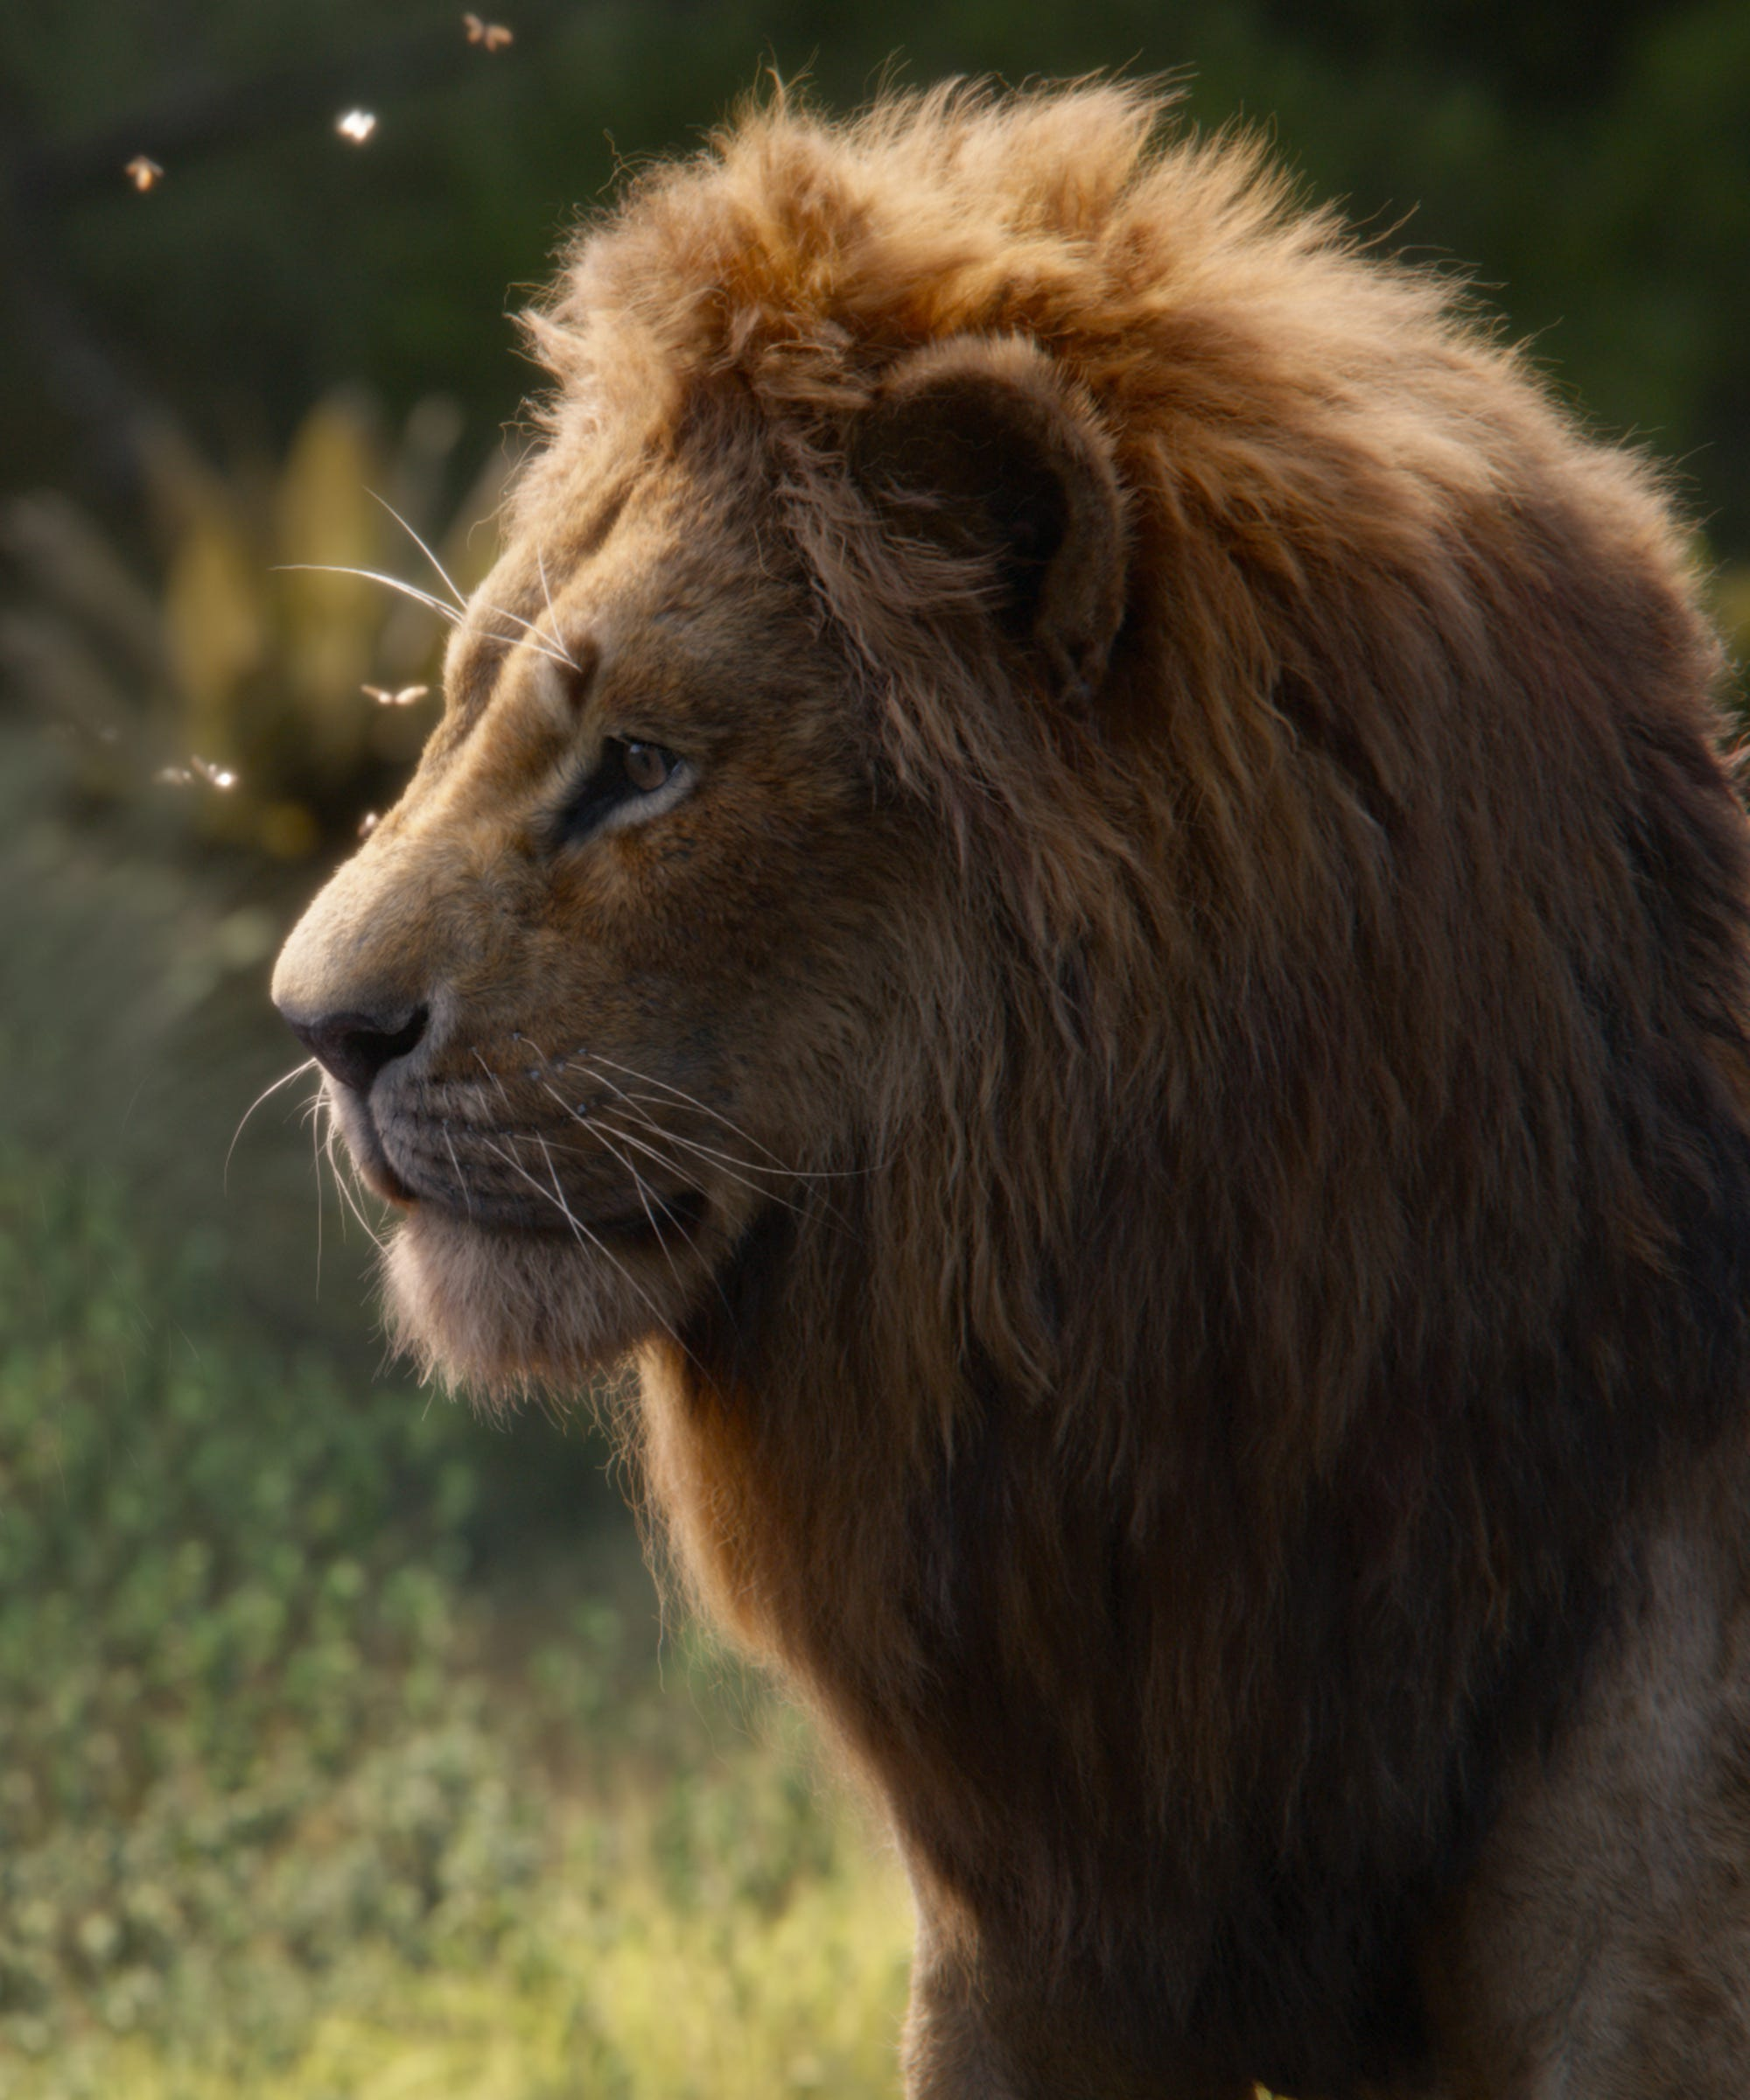 Why New Lion King Doesn T Hold Up To Original Review